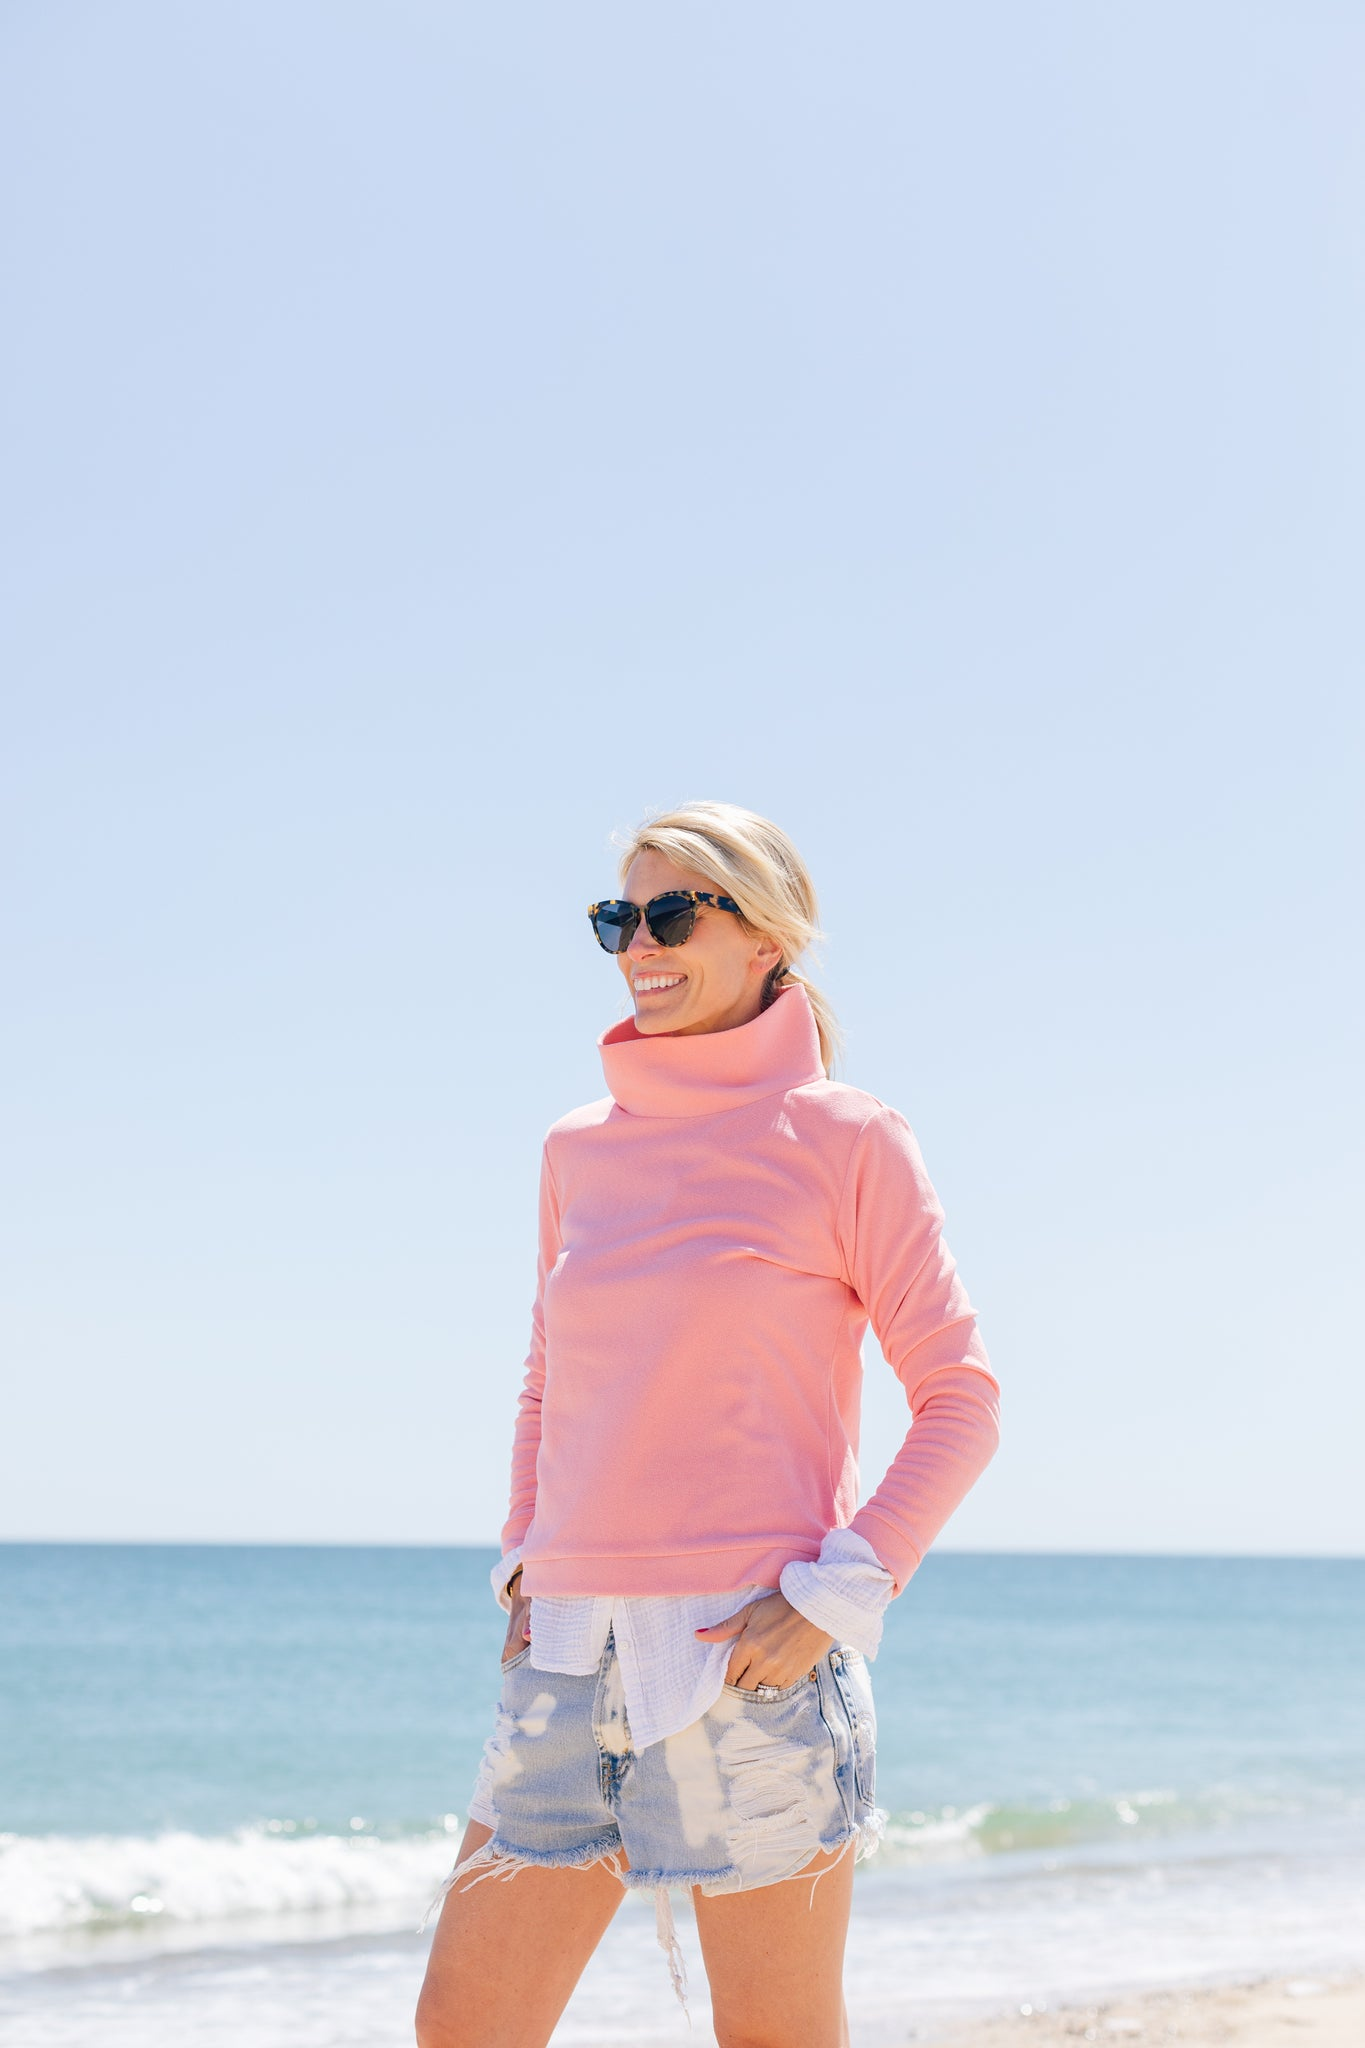 Dudley Stephens fleece island coral nantucket